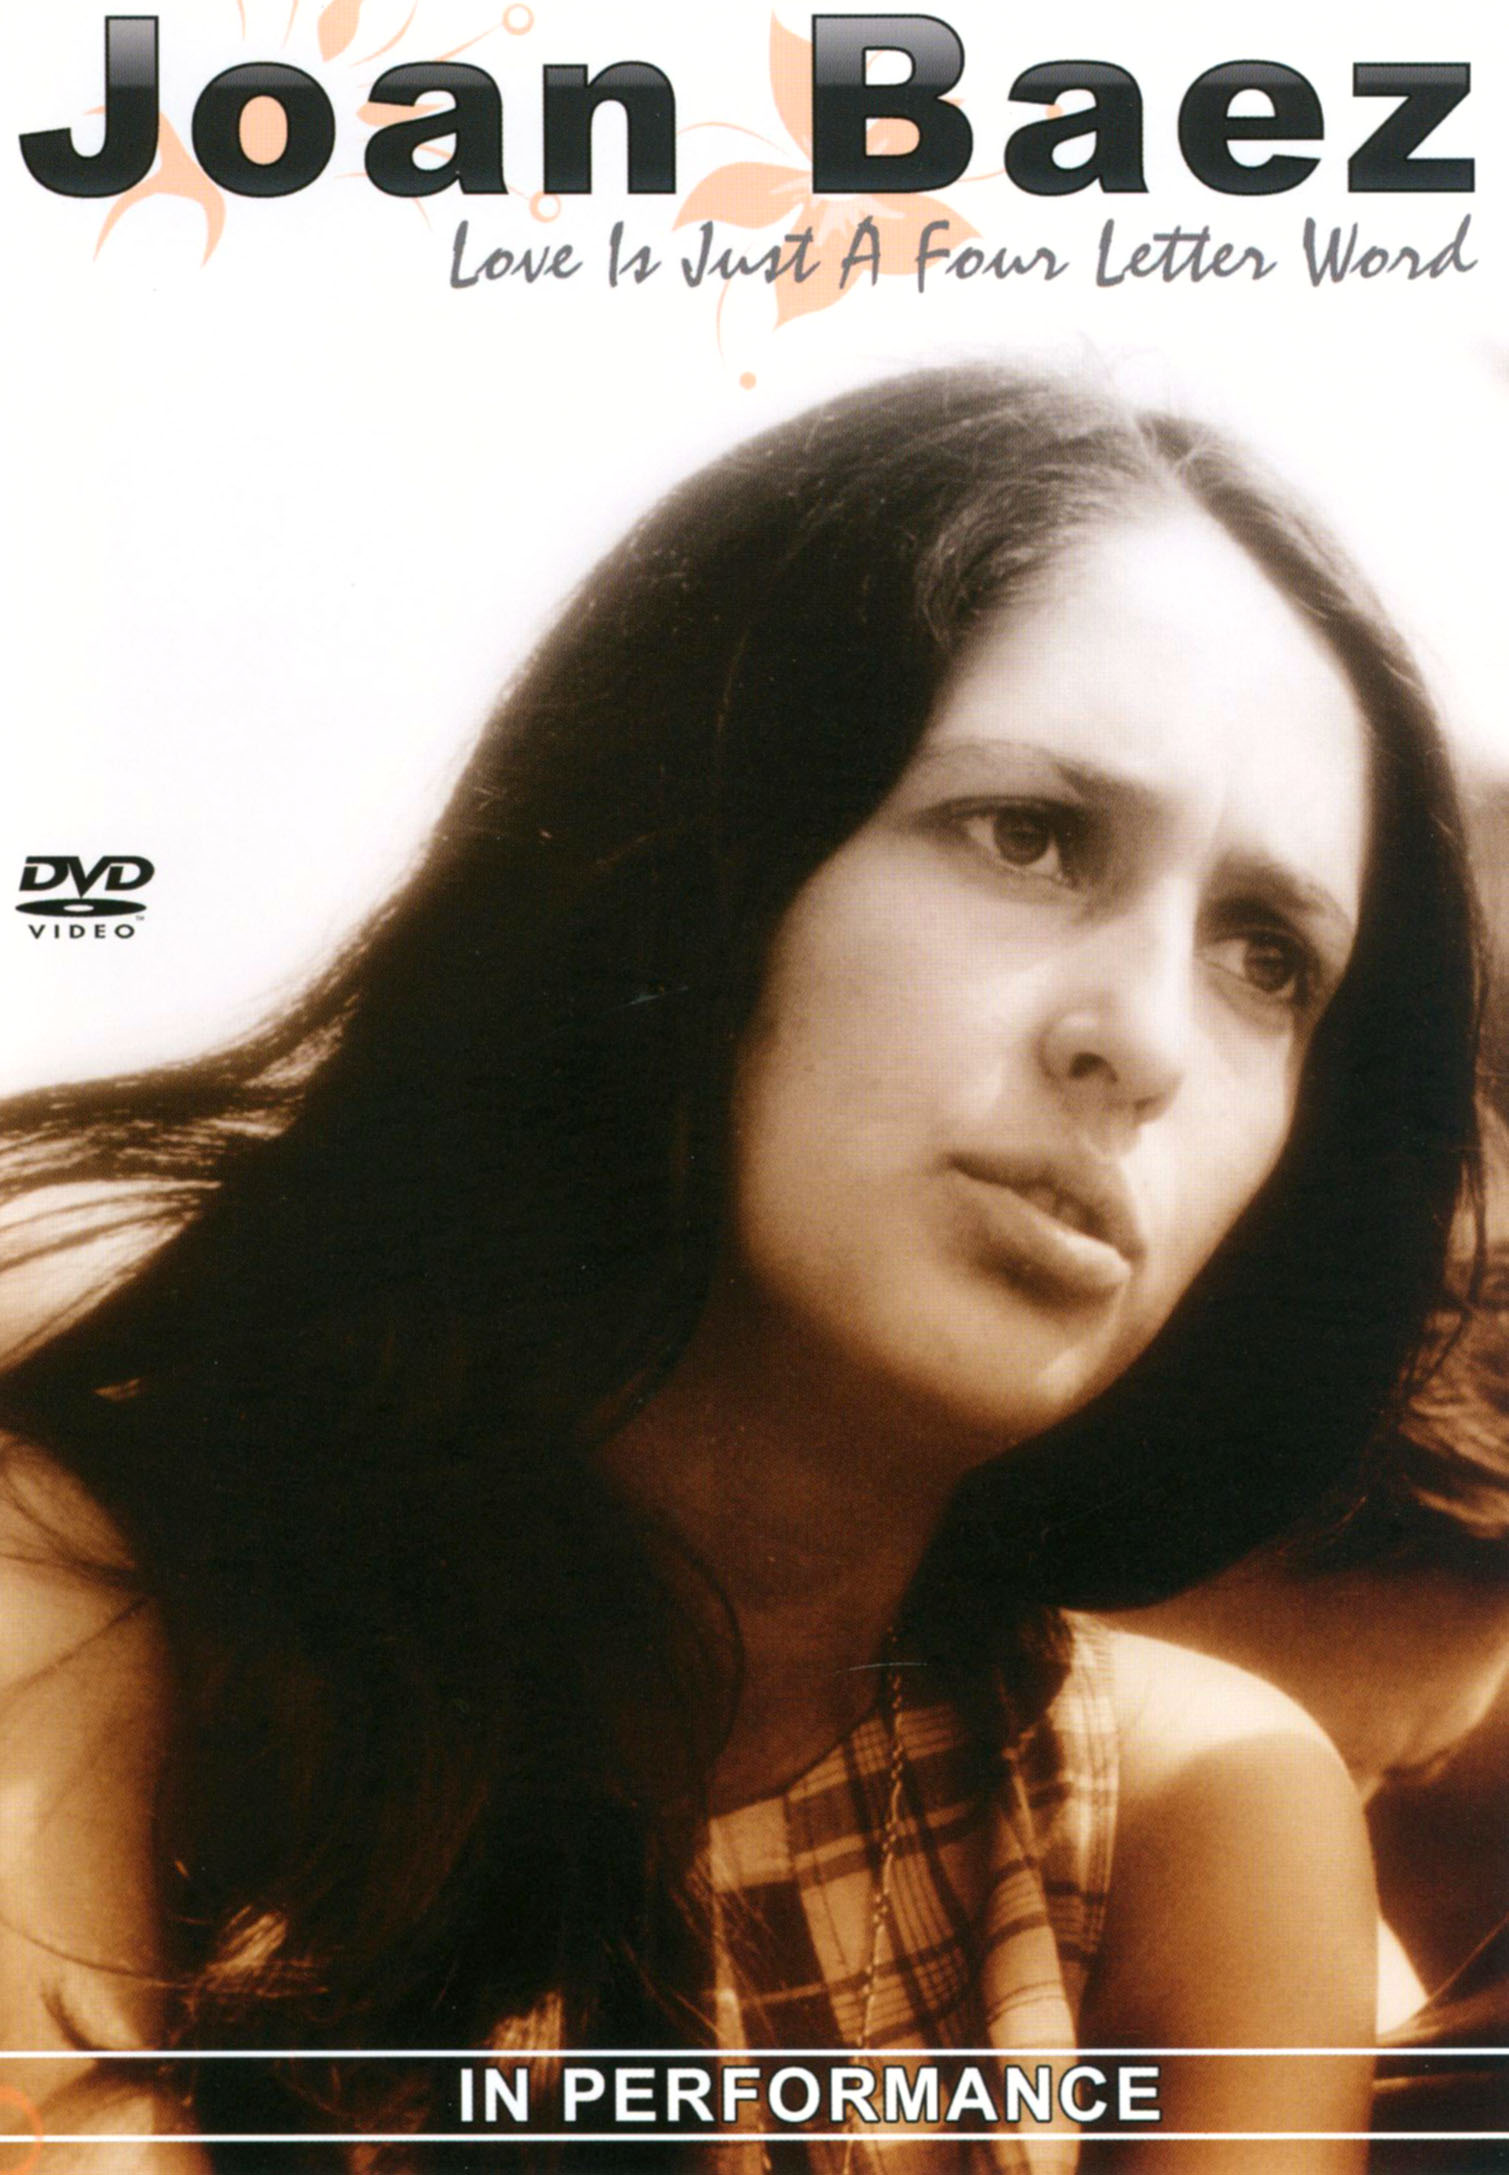 Joan Baez: Love Is Just a Four Letter Word - In Performance